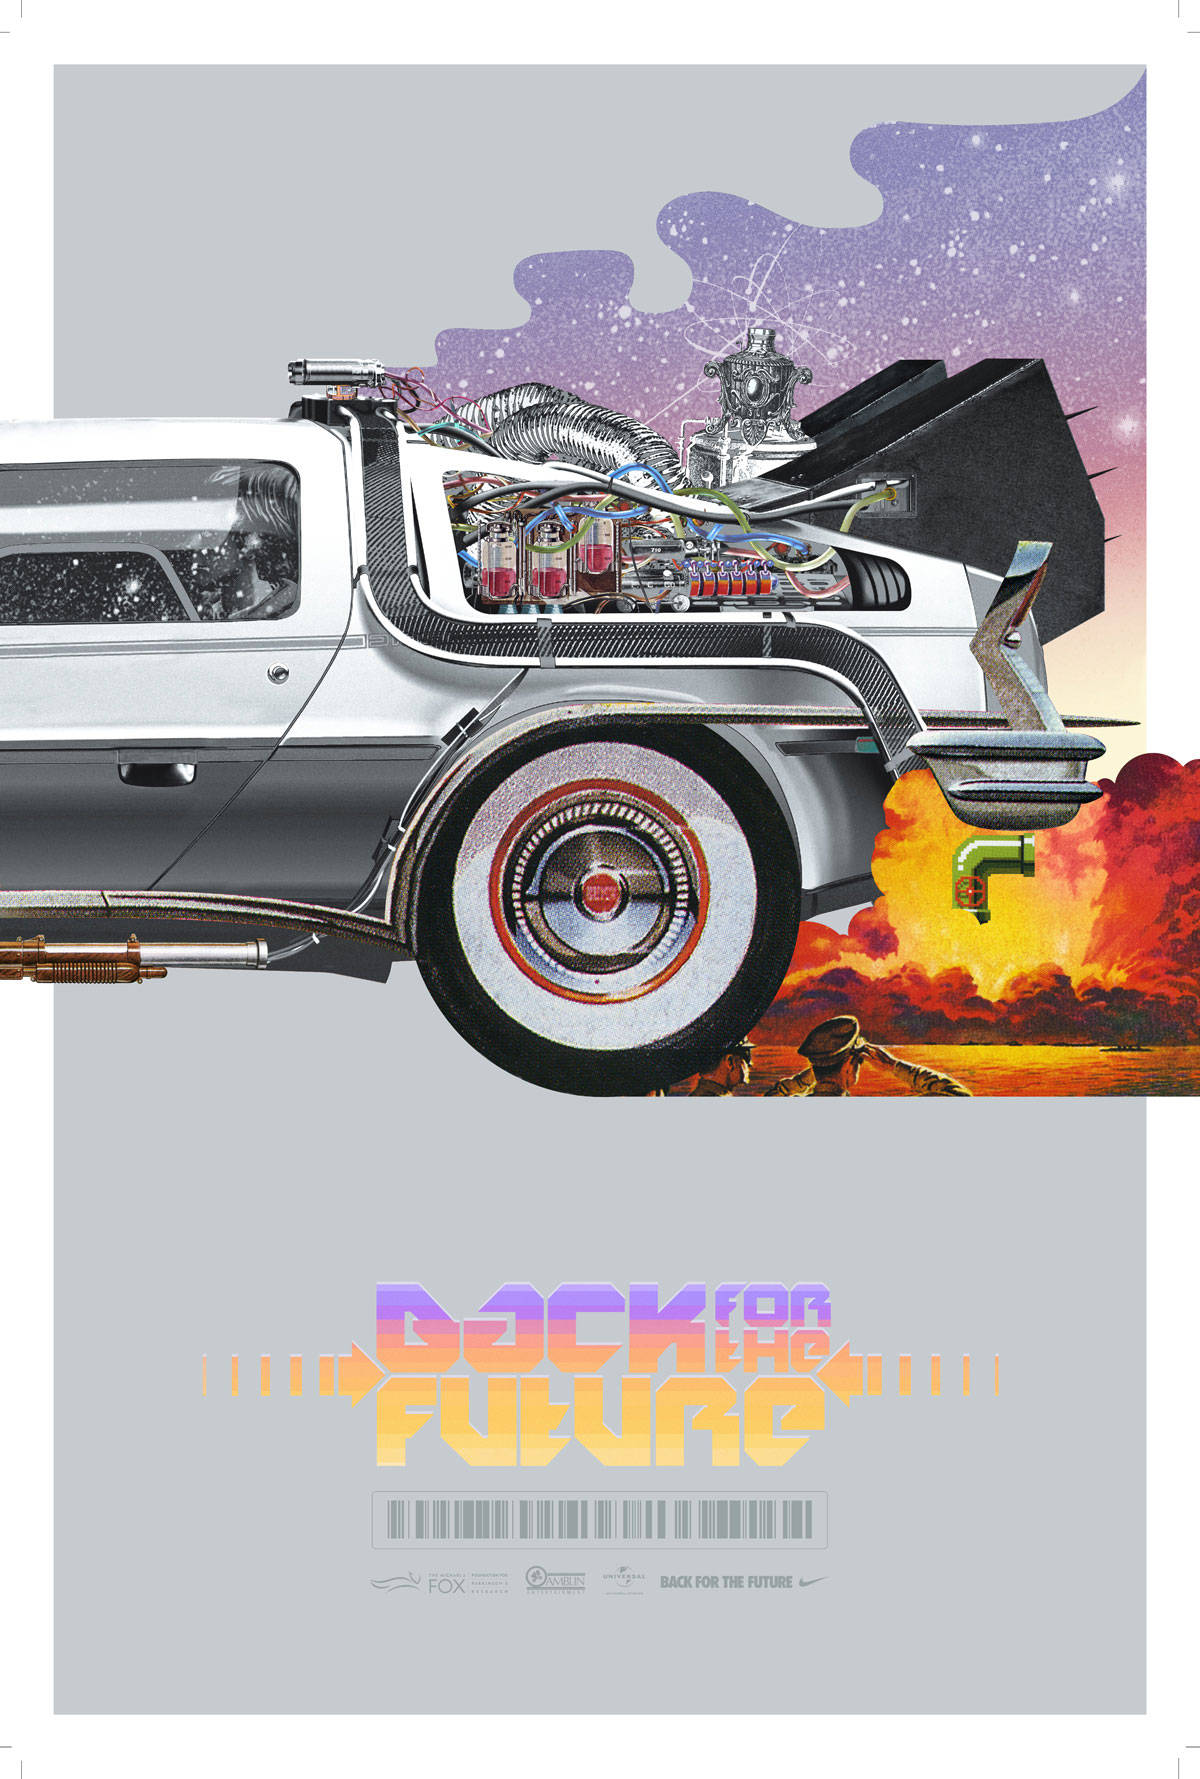 Back For The Future: Retro Posters